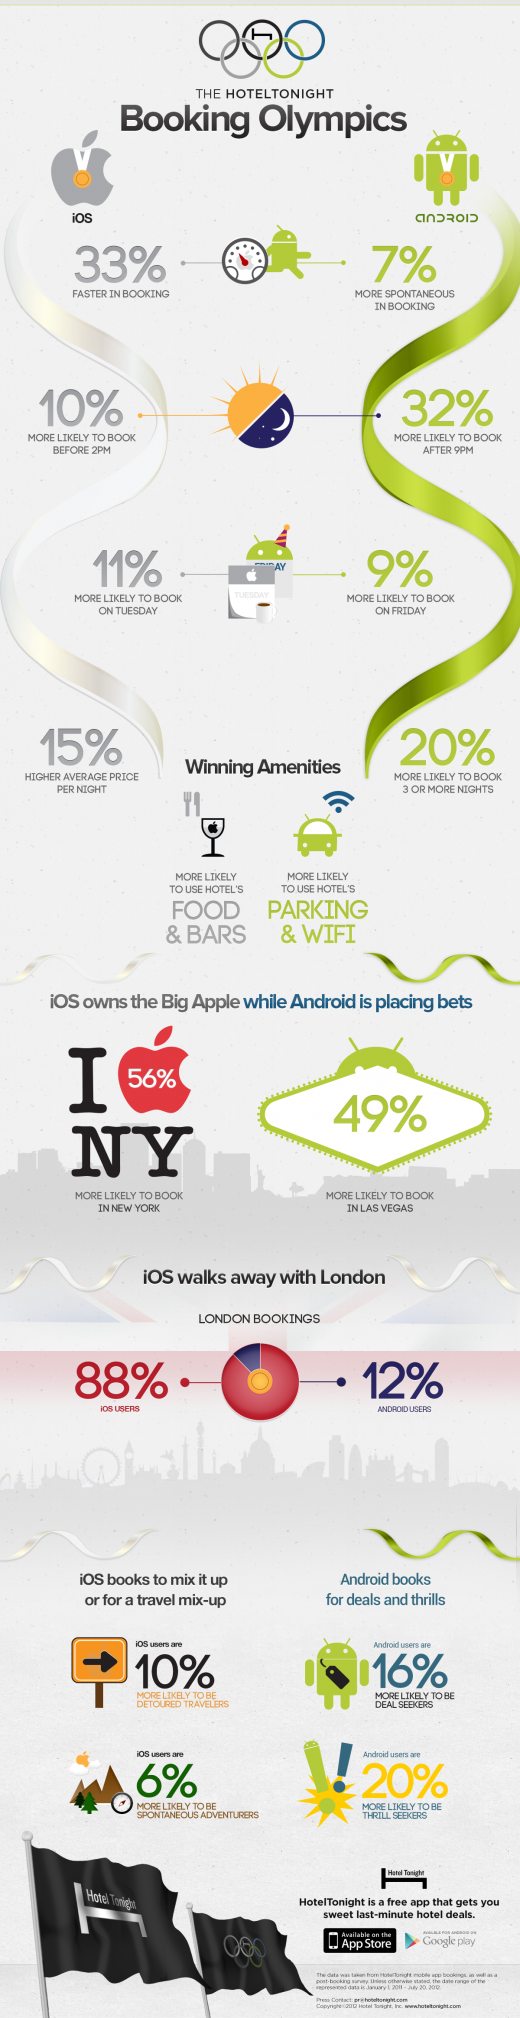 HT Booking Olympics Infographic 520x2018 HotelTonight stats reveal iOS users spend 15% more per night on hotels than Android users